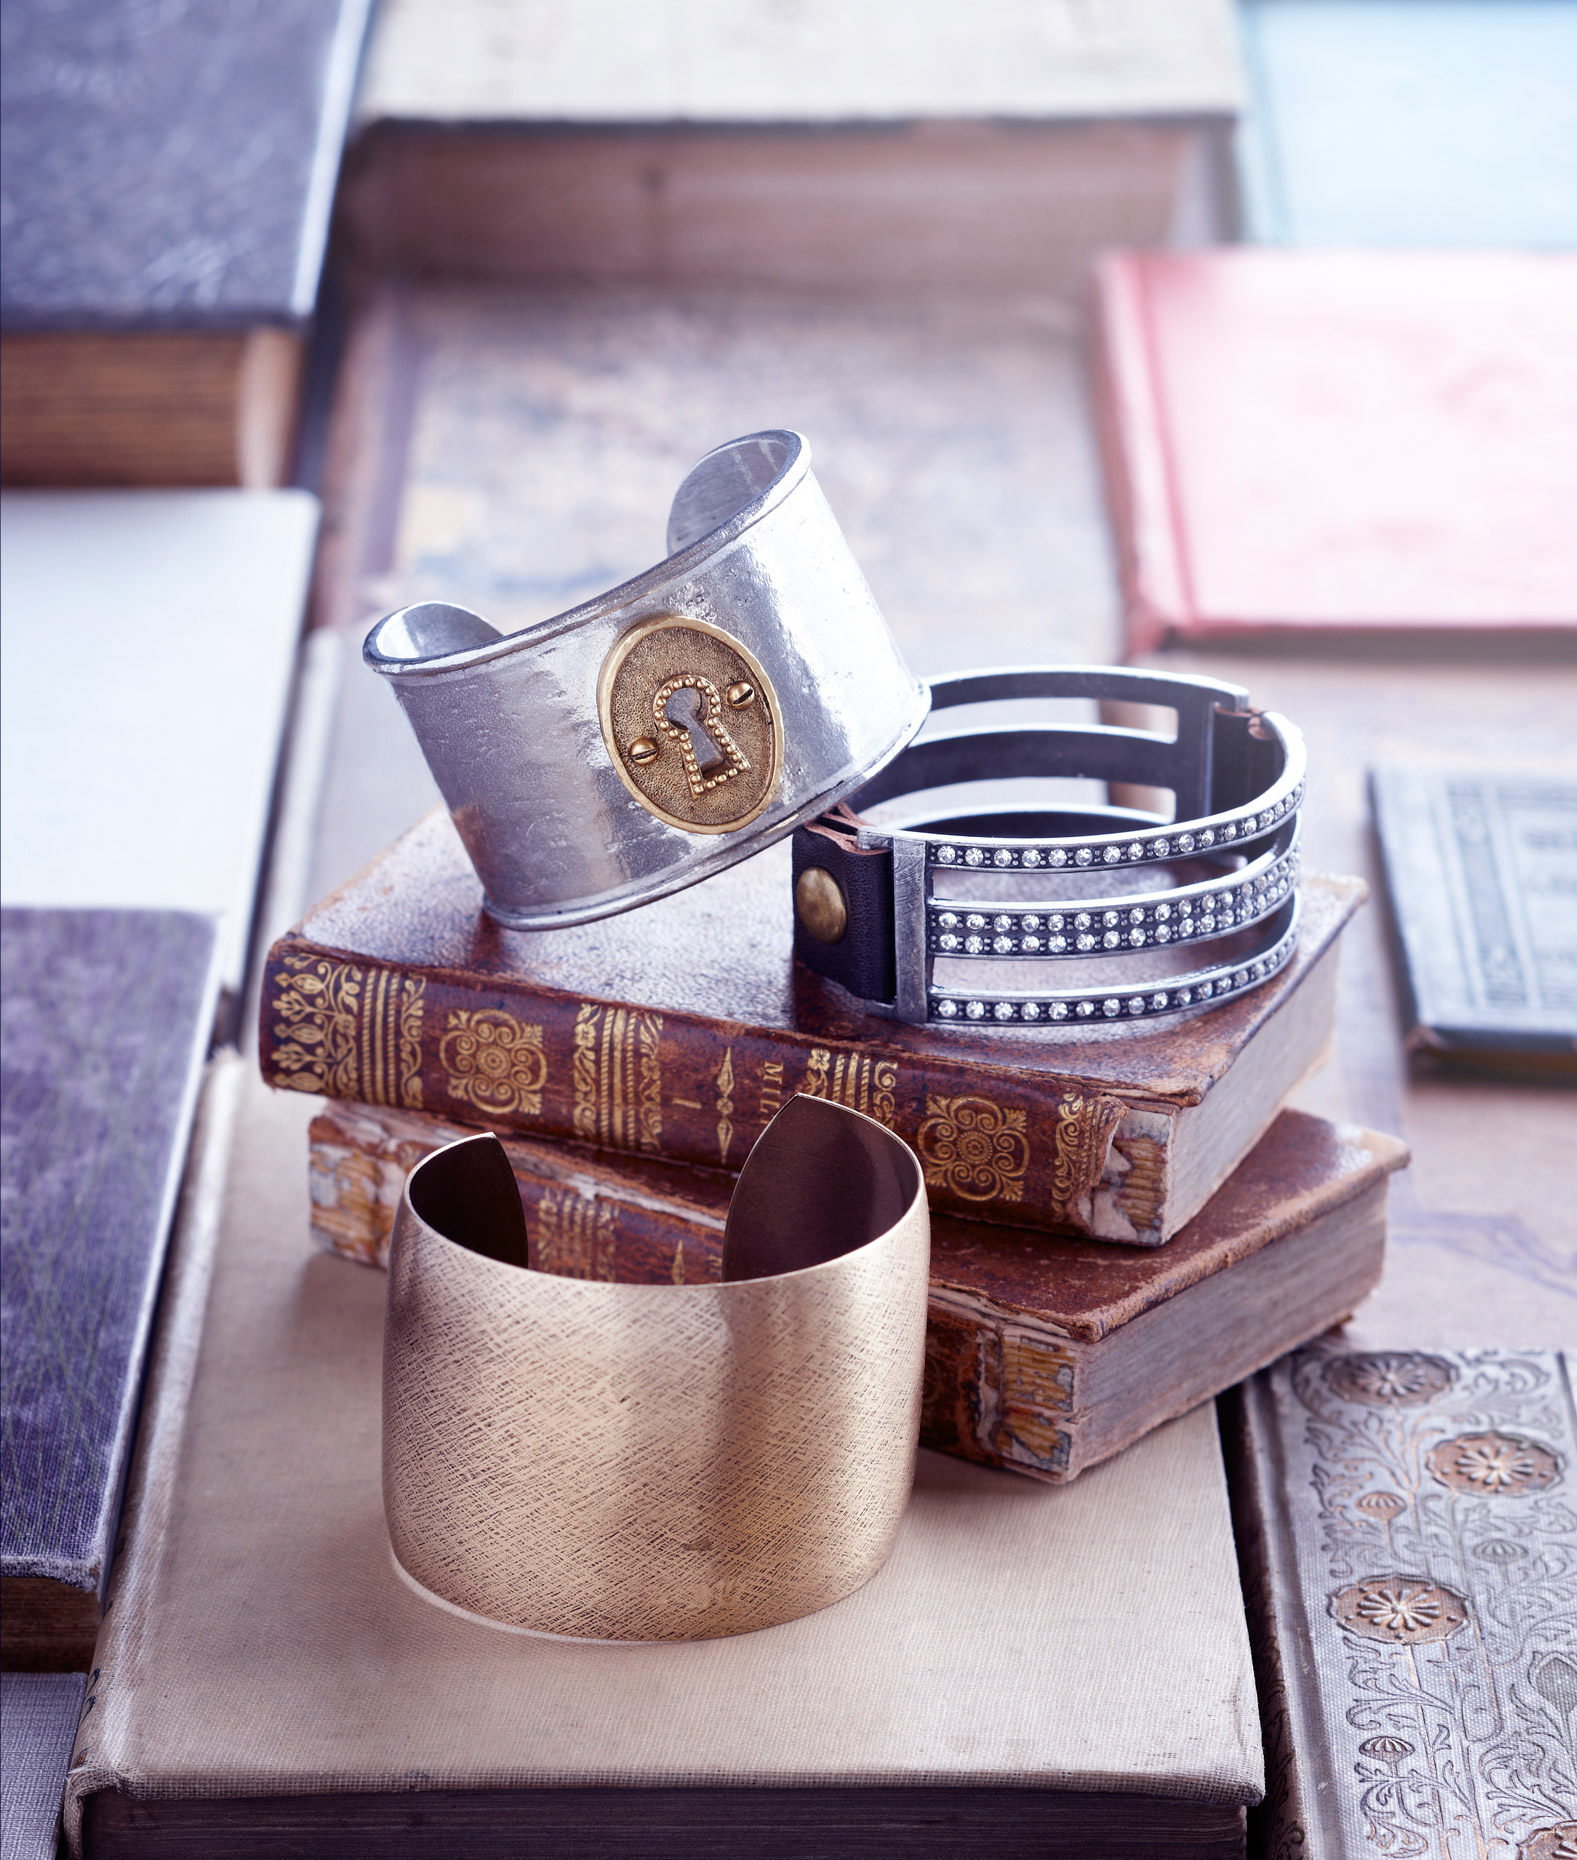 Product photography Jewelry Derek Israelsen Metal Bracelets Books